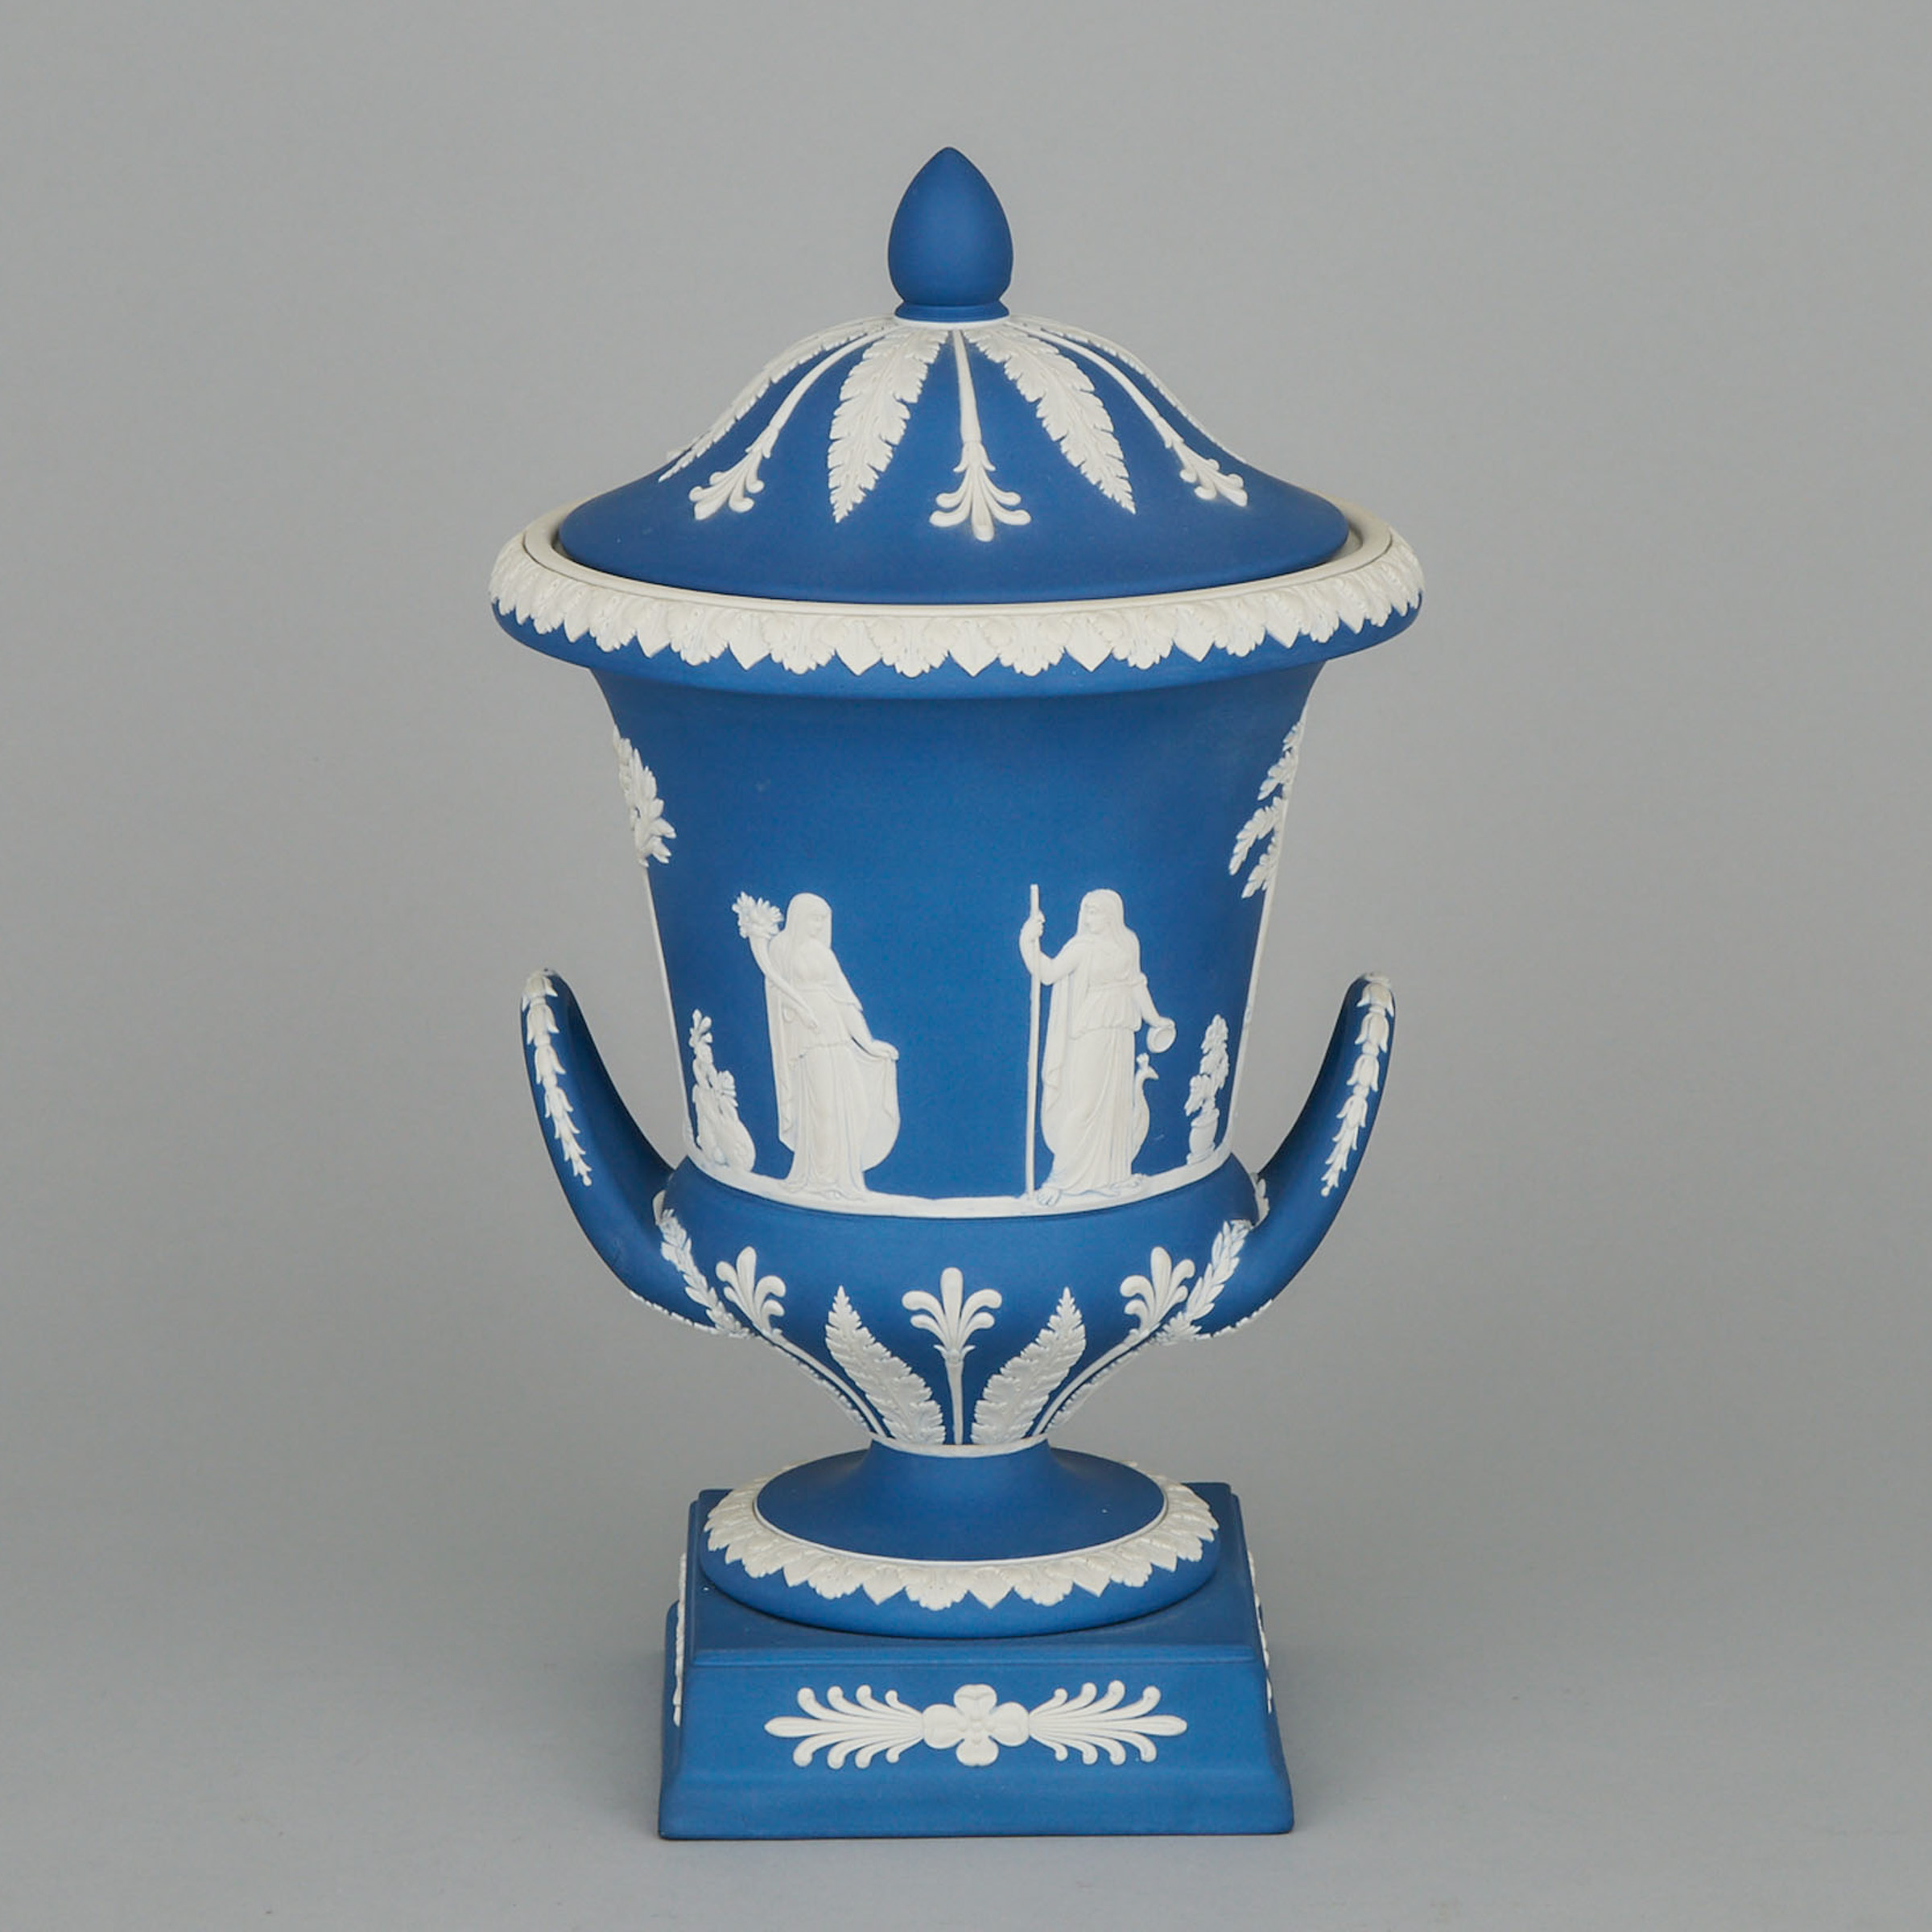 Wedgwood Blue Jasper-Dip Vase and Cover, 20th century